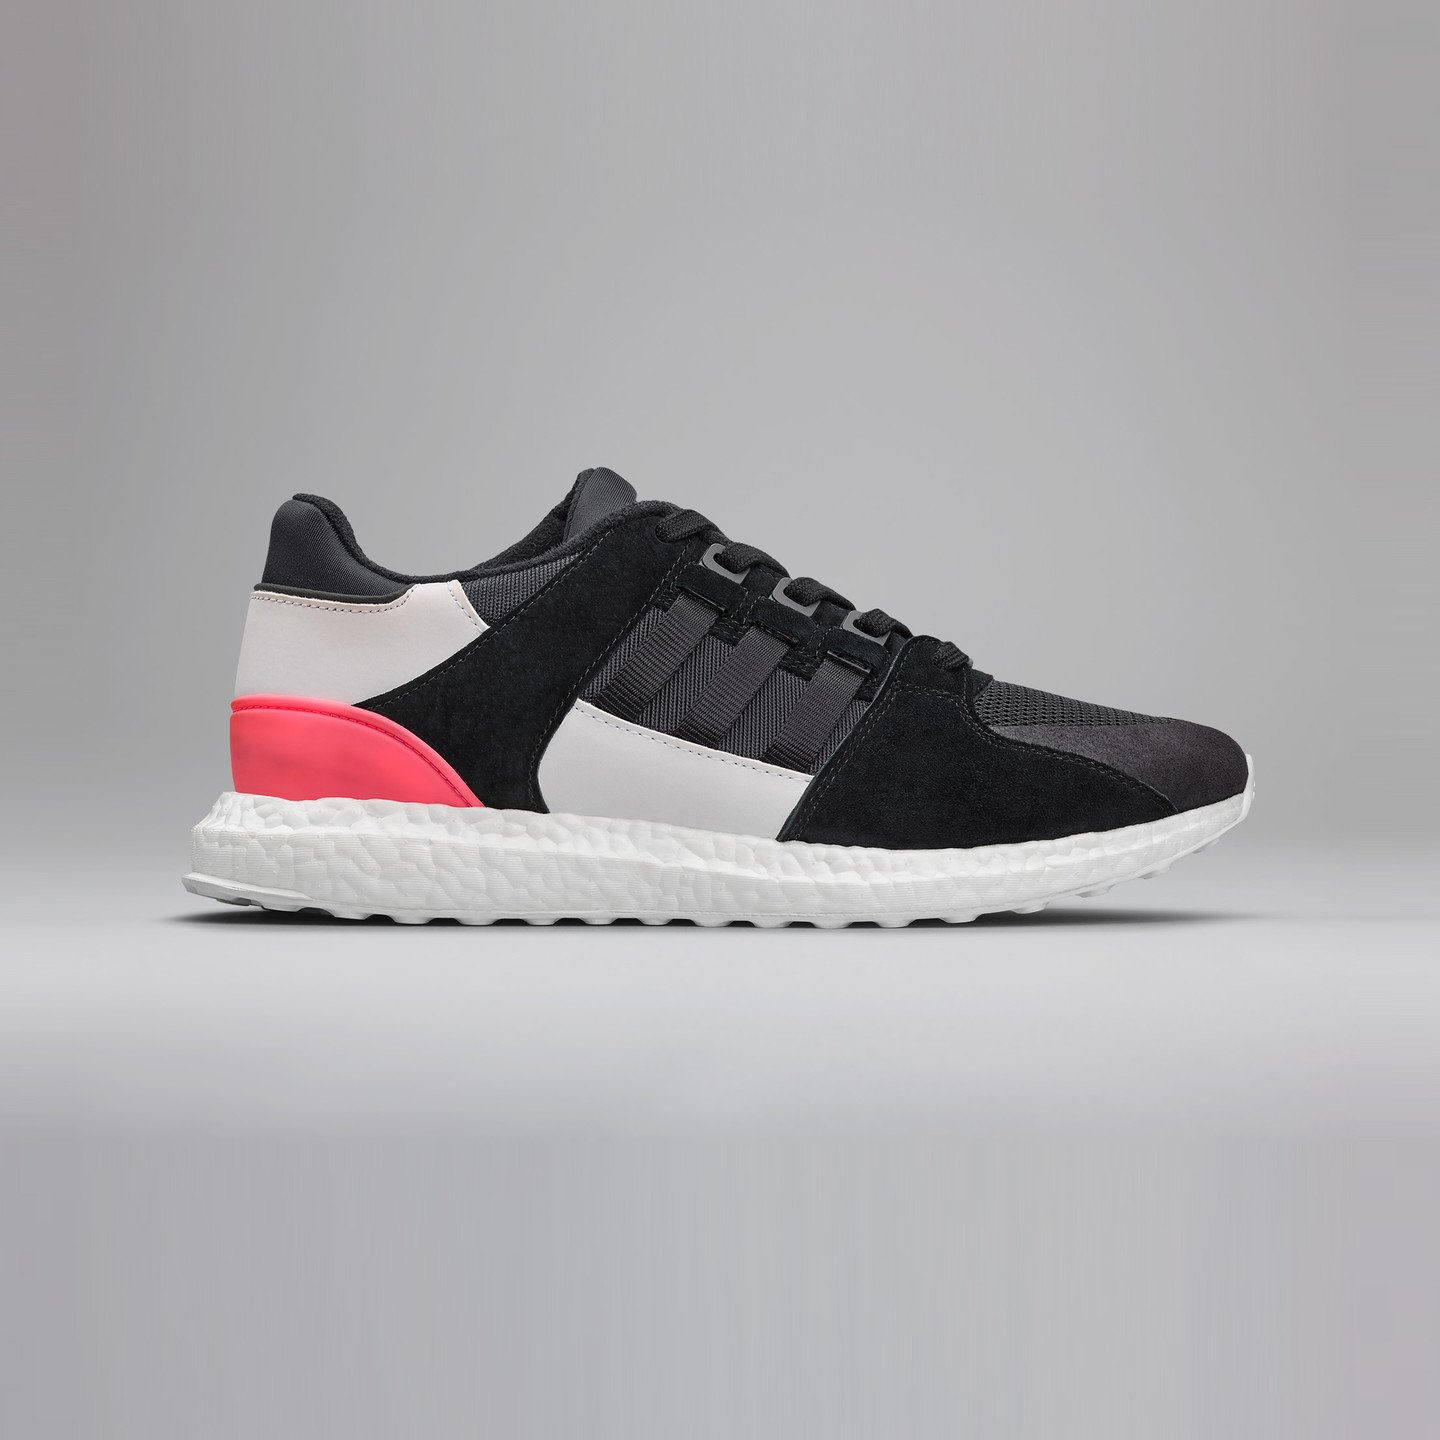 Adidas EQT Support Ultra Black / Turbo Red BB1237-43.33